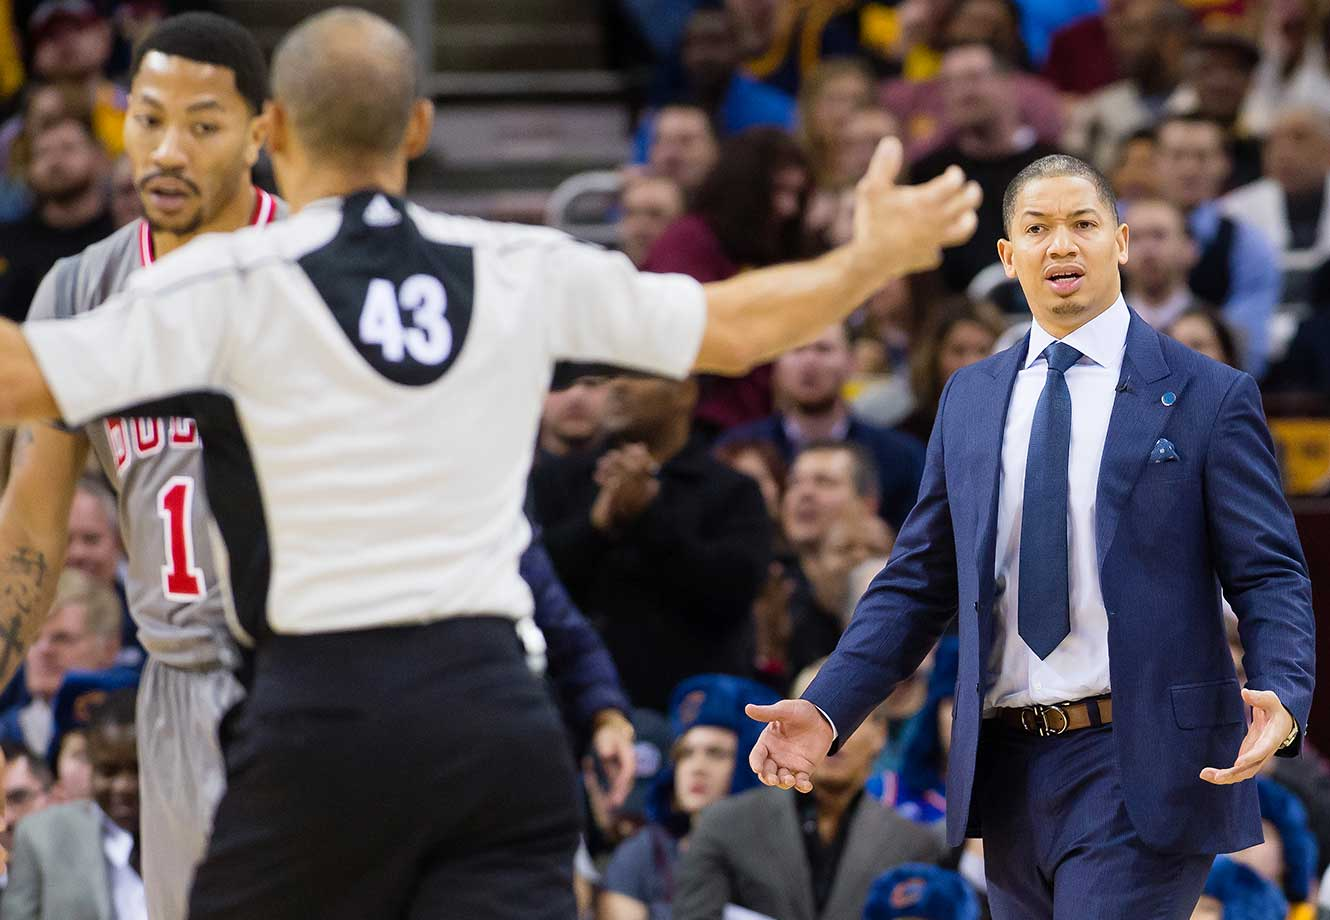 Head coach Tyronn Lue of the Cleveland Cavaliers reacts to a call from referee Dan Crawford at Quicken Loans Arena in Cleveland.